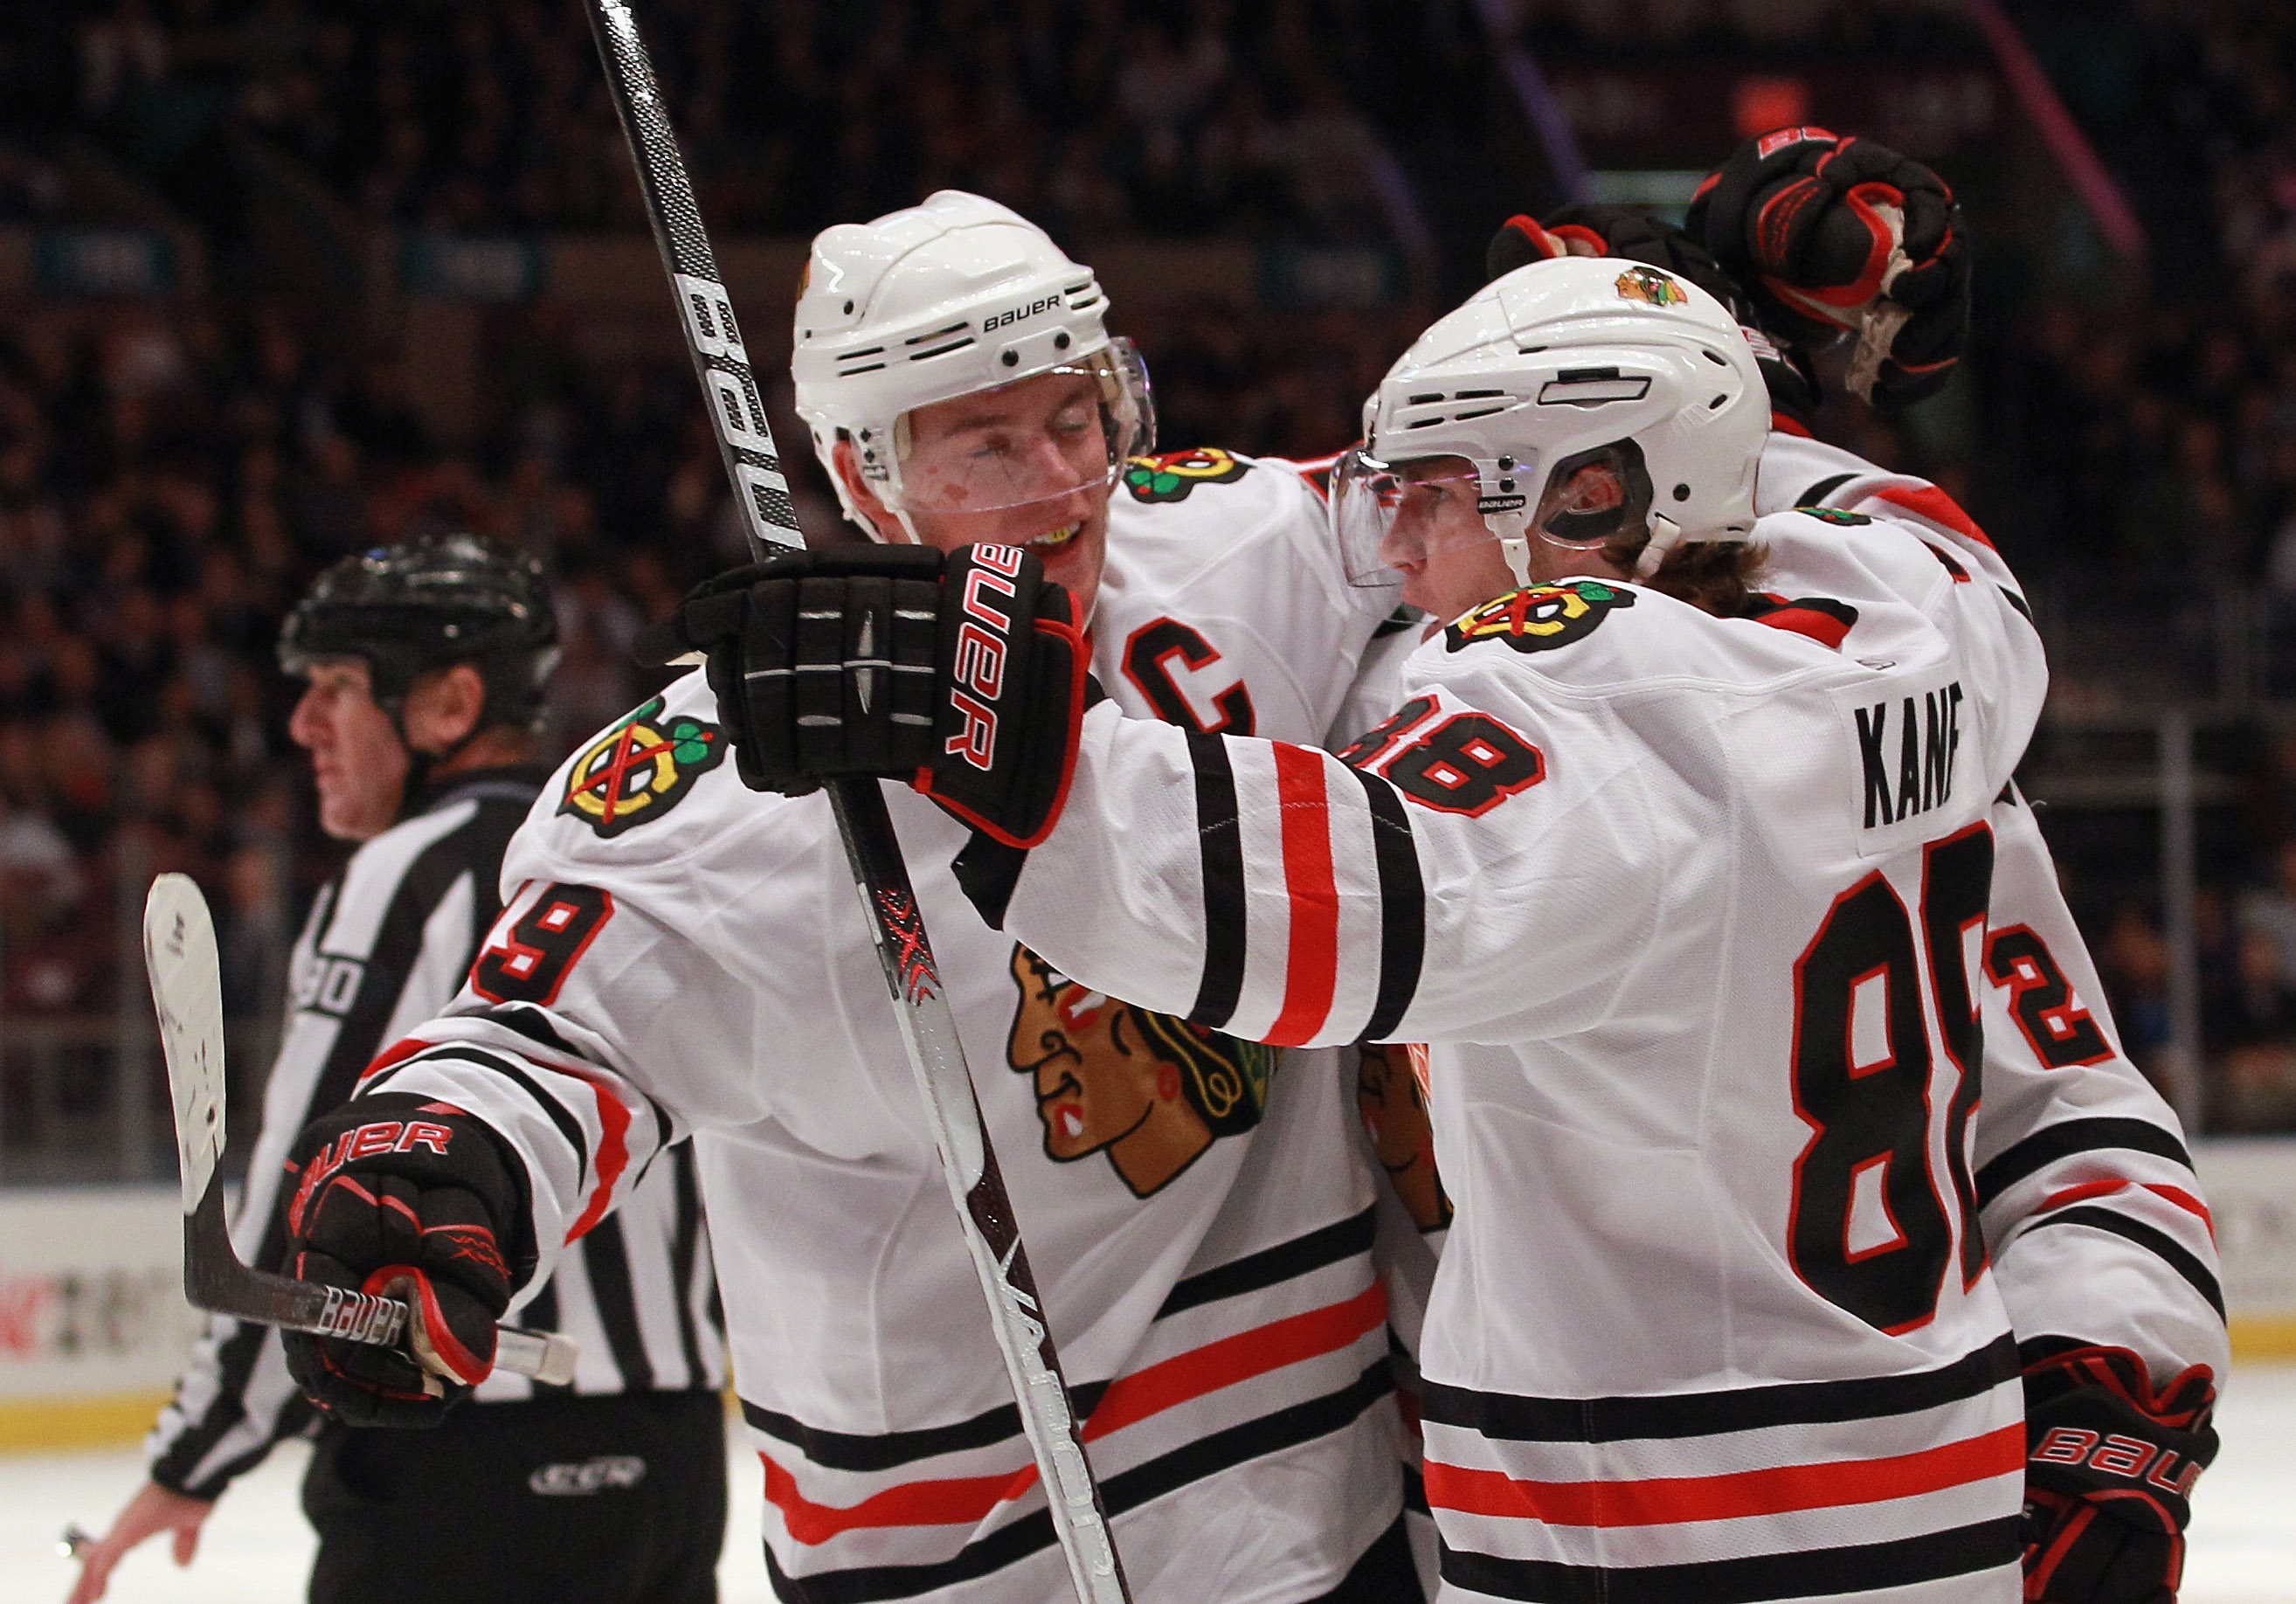 NEW YORK - NOVEMBER 01: Patrick Kane #88 (R) of the Chicago Blackhawks scores at 6:08 of the third period against the New York Rangers and is joined by Jonathan Toews #19 (L) at Madison Square Garden on November 1, 2010 in New York City. The Rangers defea